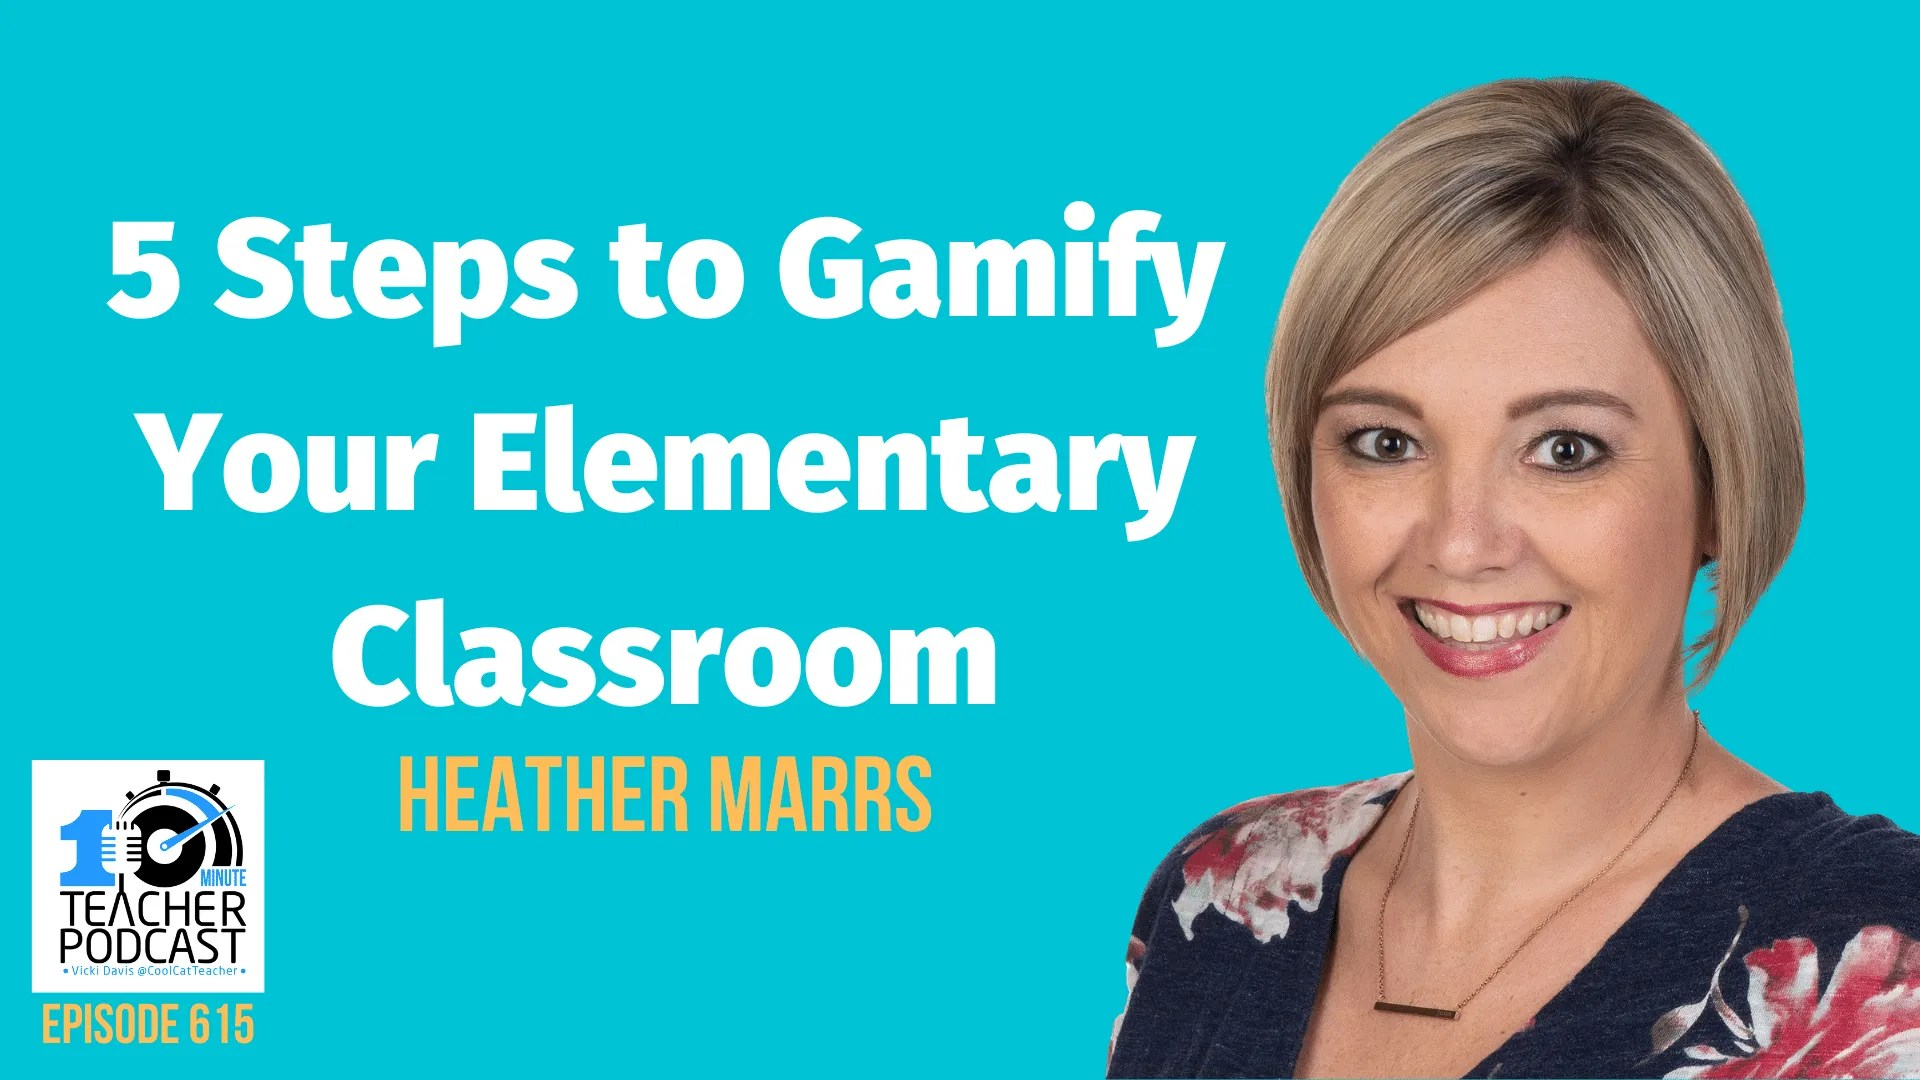 5 Steps to Gamify Your Elementary Classroom @coolcatteacher